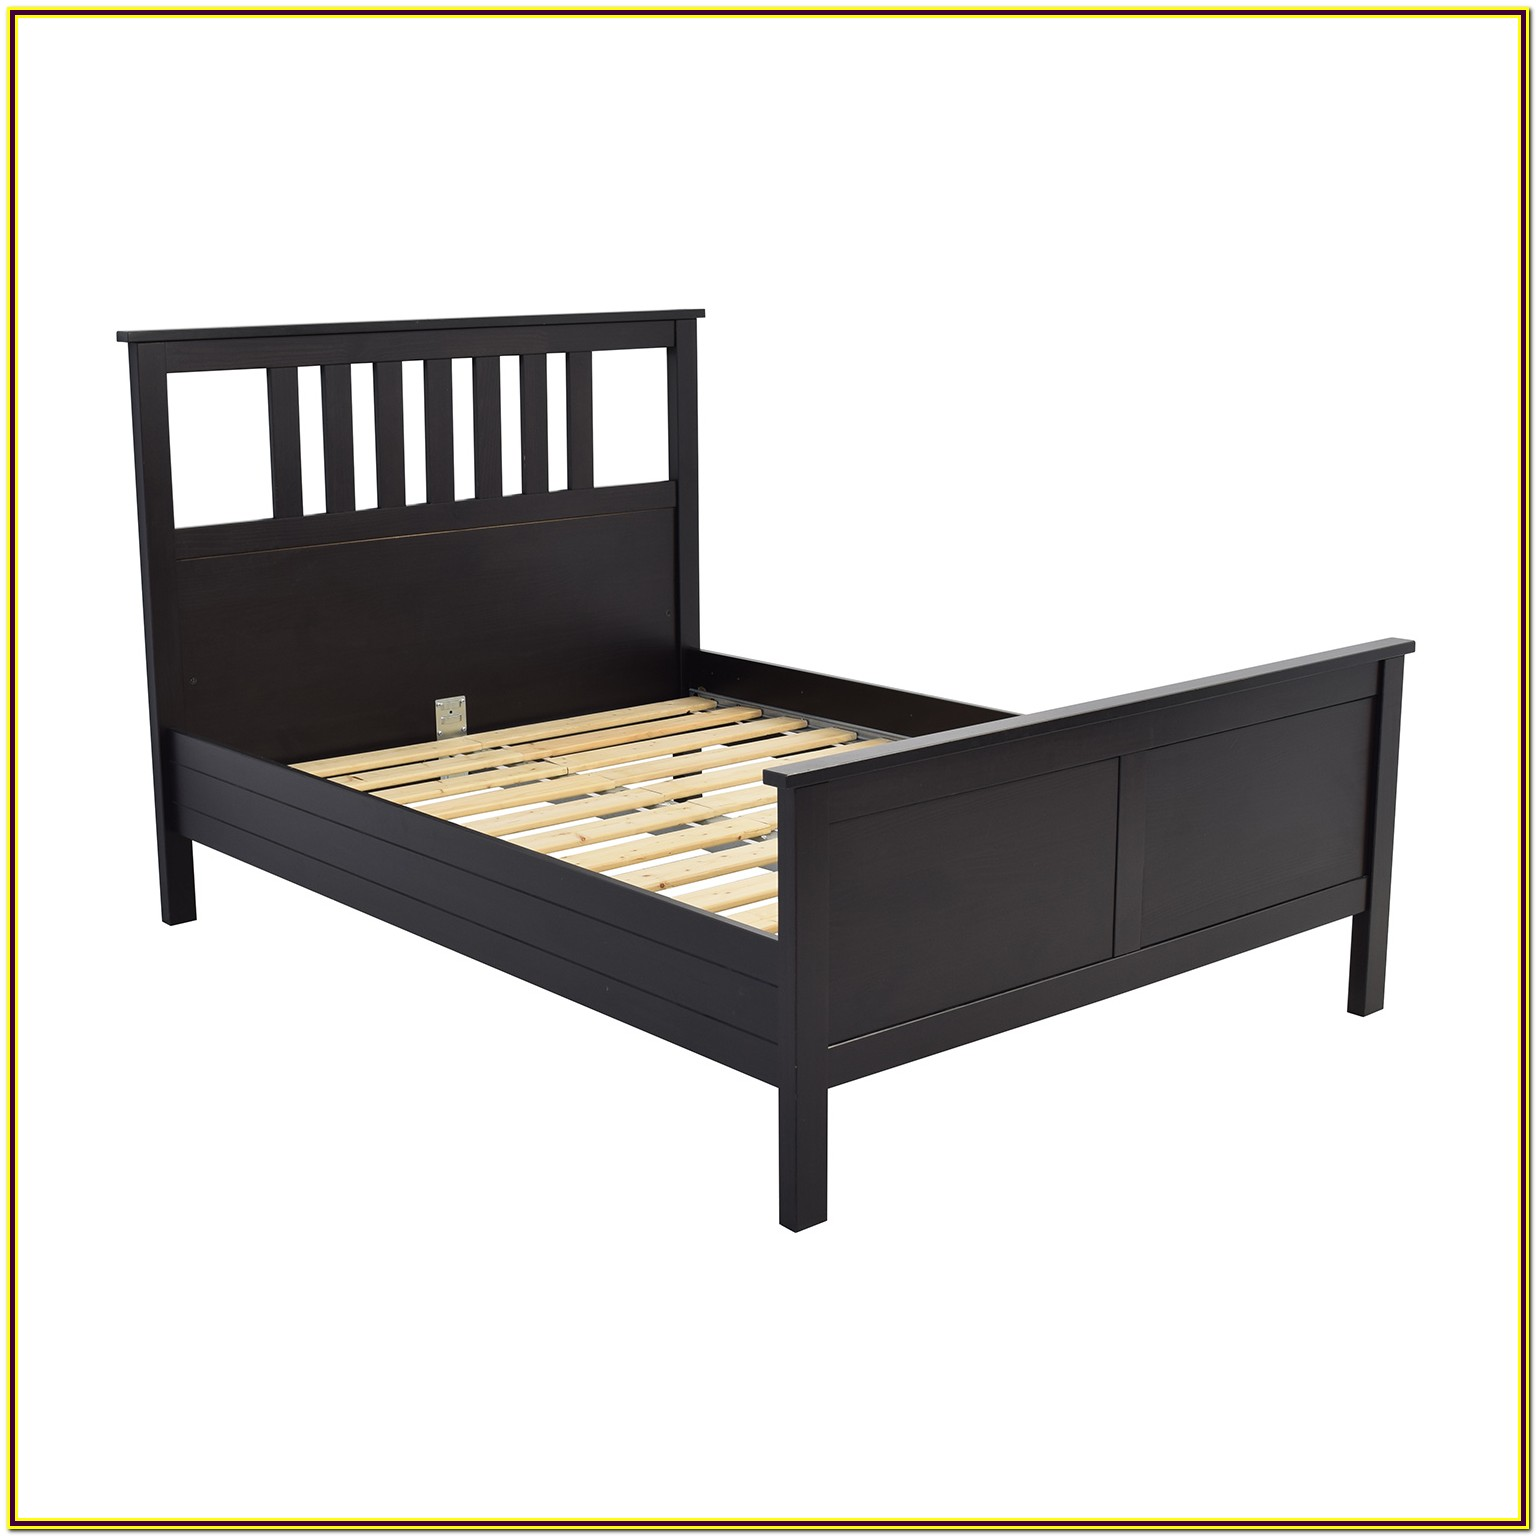 Ikea Queen Bed Wooden Frame